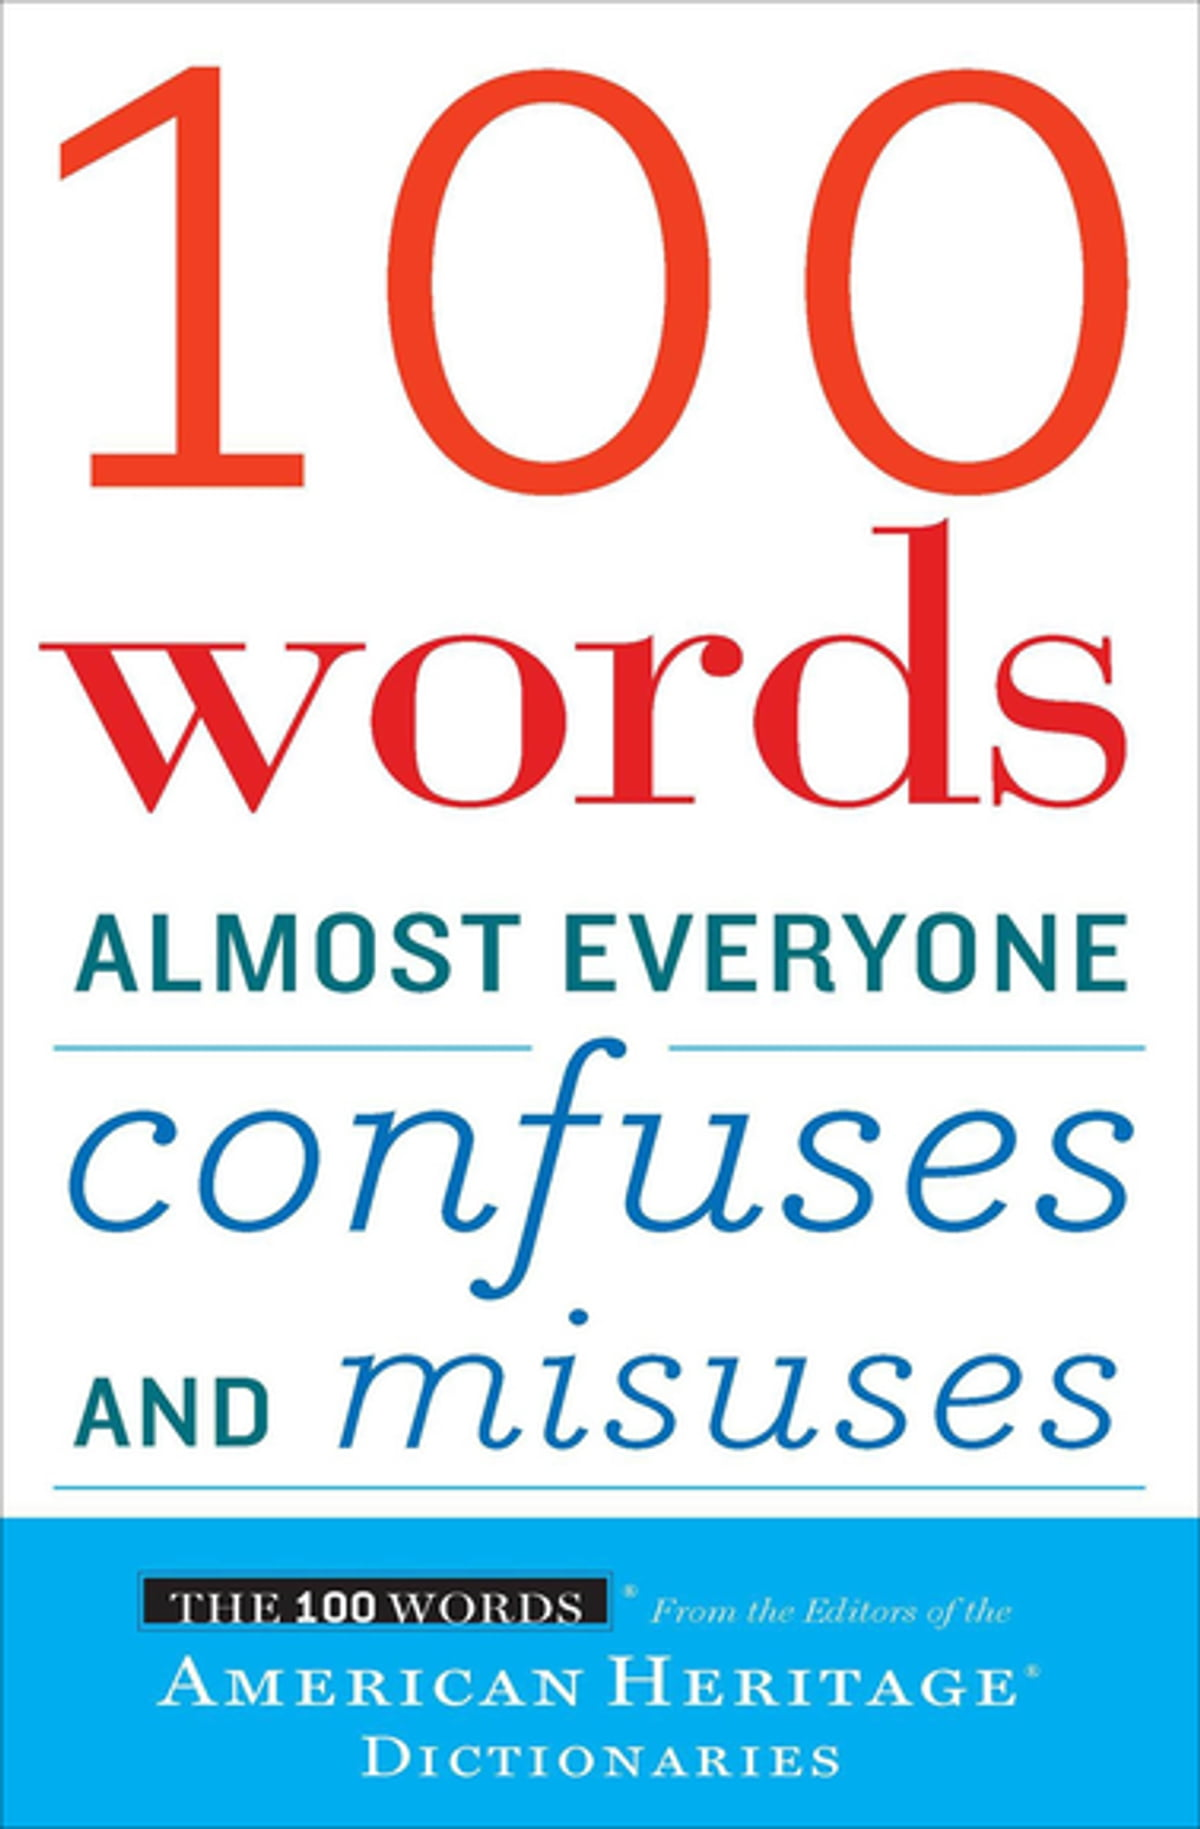 100 Words Almost Everyone Confuses and Misuses eBook by Editors of the  American Heritage Dictionaries - 9780547350264 | Rakuten Kobo